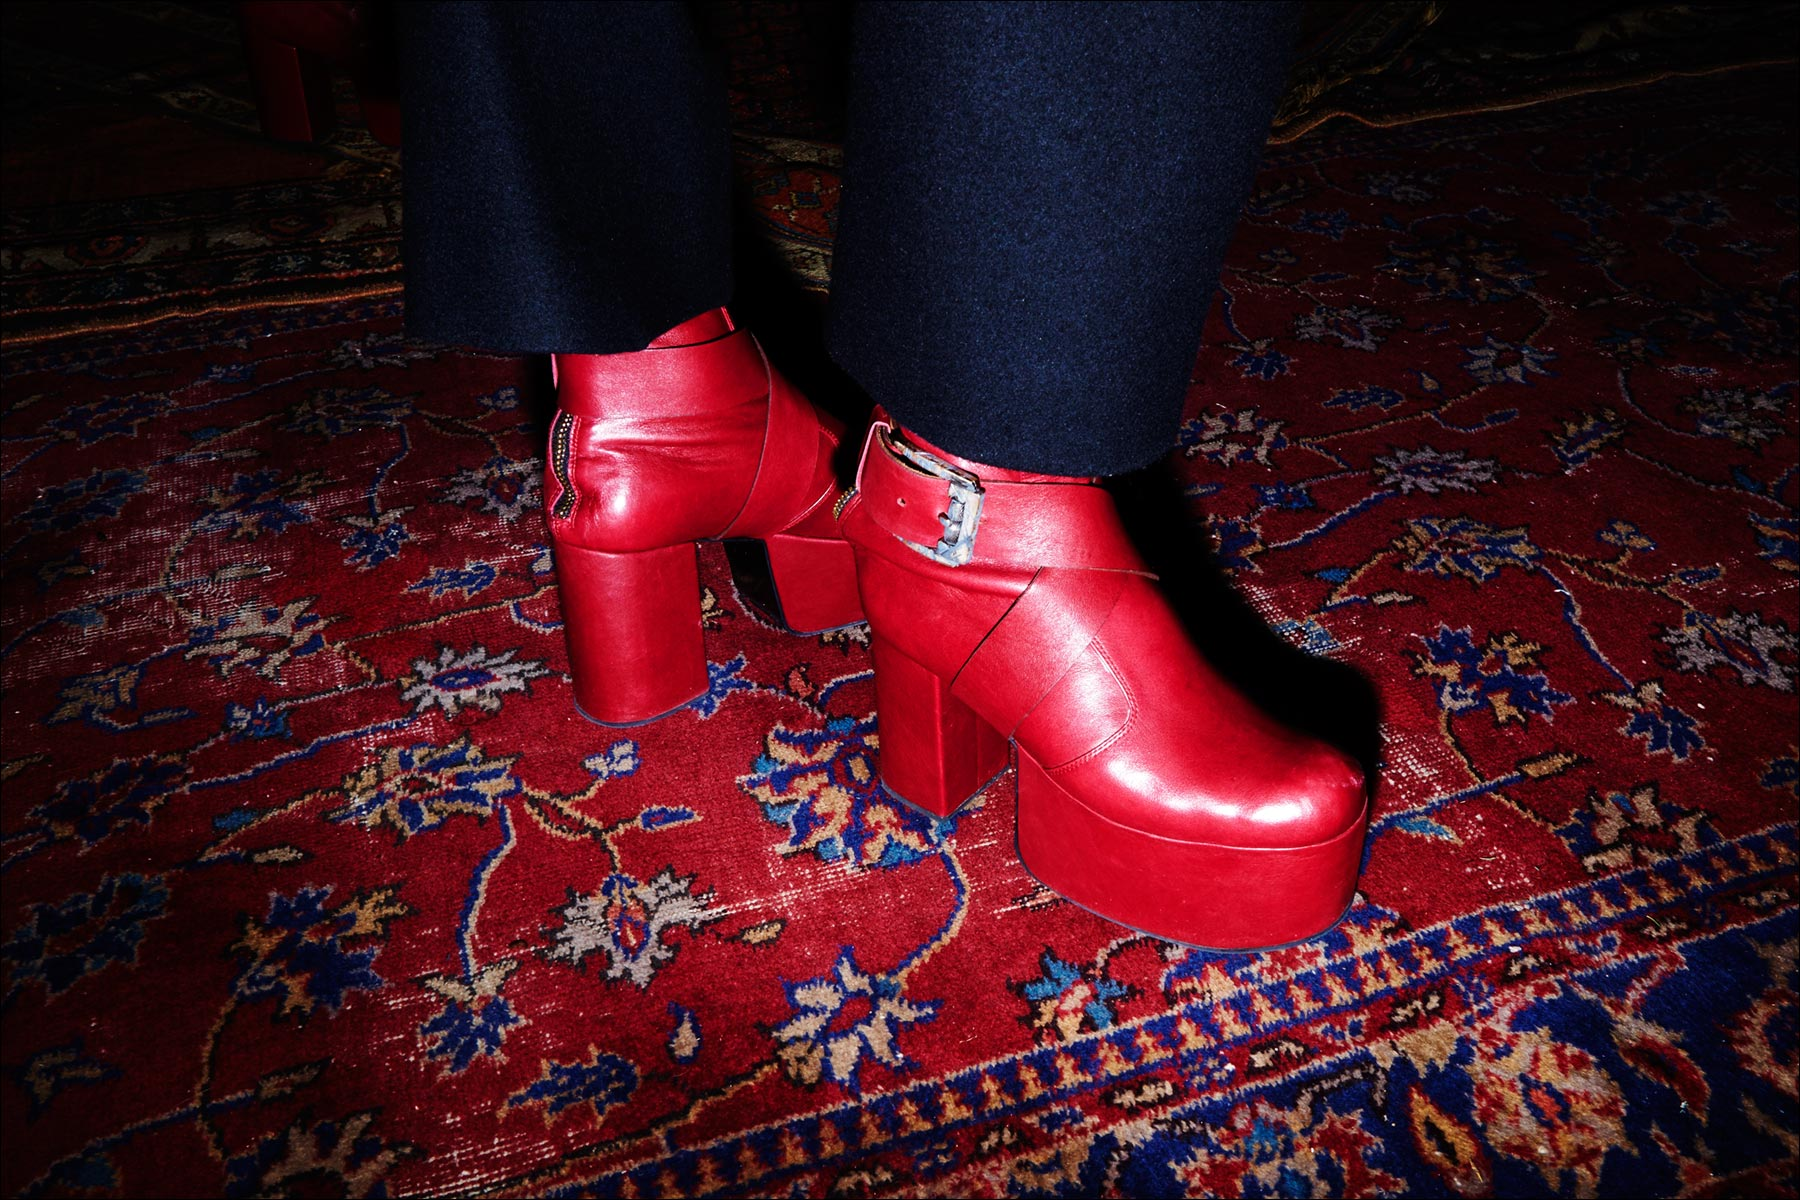 Red platforms shown during the Kozaburo Fall 2017 menswear presentation in New York. Photography by Alexander Thompson for Ponyboy magazine.